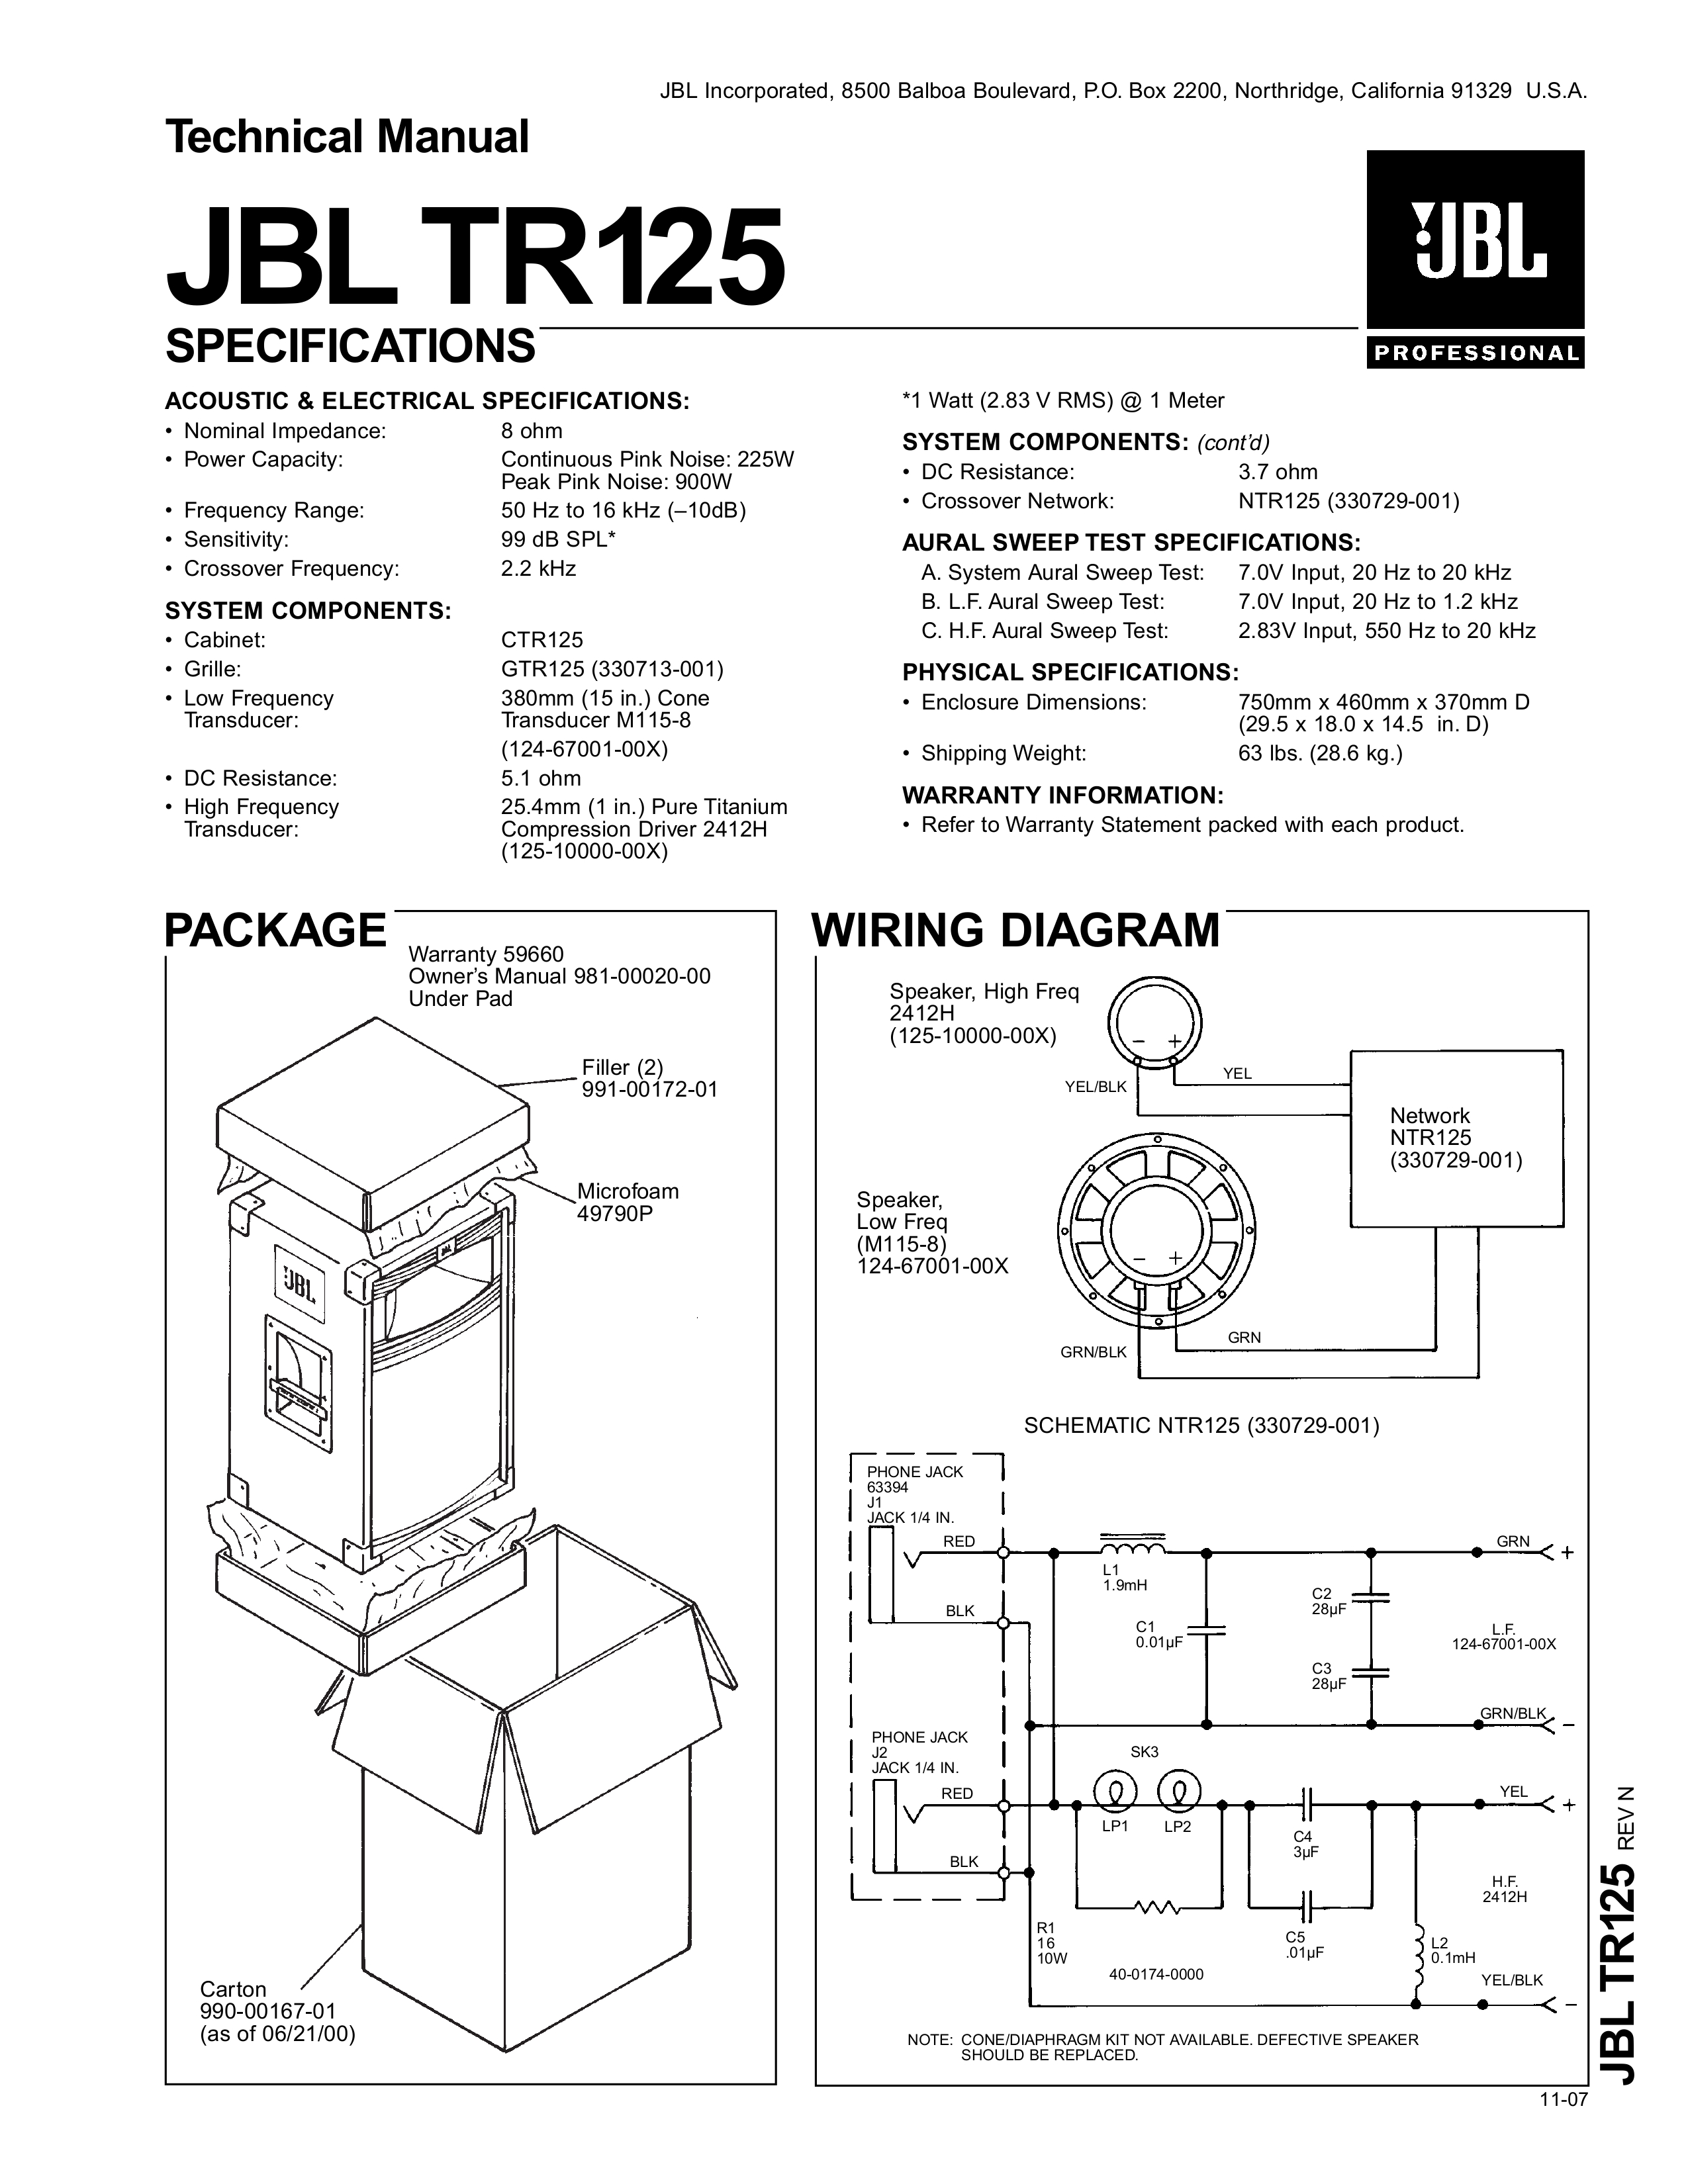 Wiring Diagram Jbl Crossover Network 73233-01